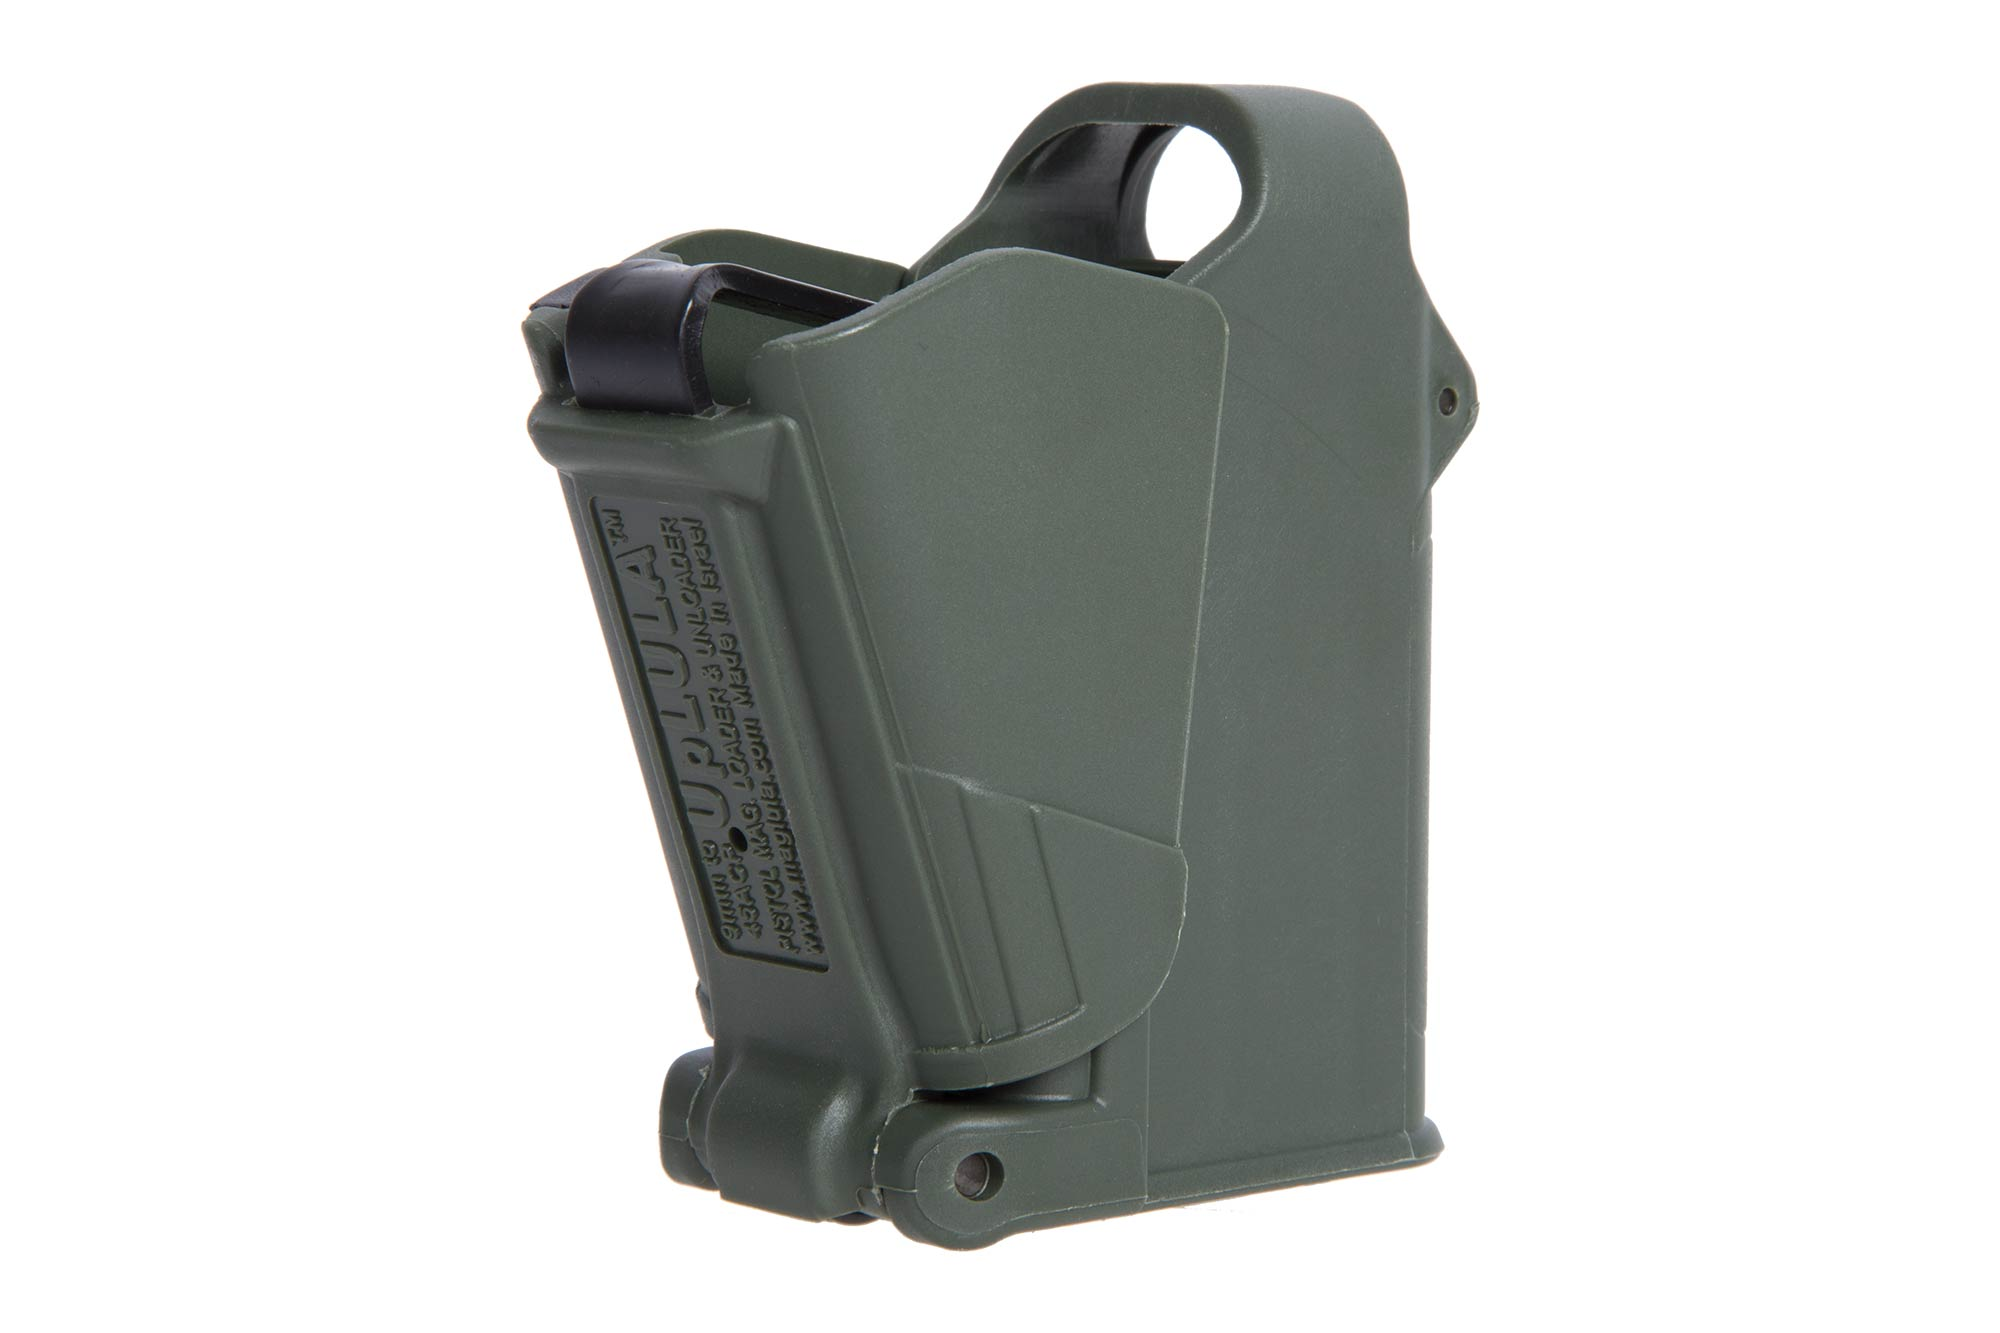 The Maglula UpLULA magazine loader is universal and compatible with 9mm up to .45 ACP